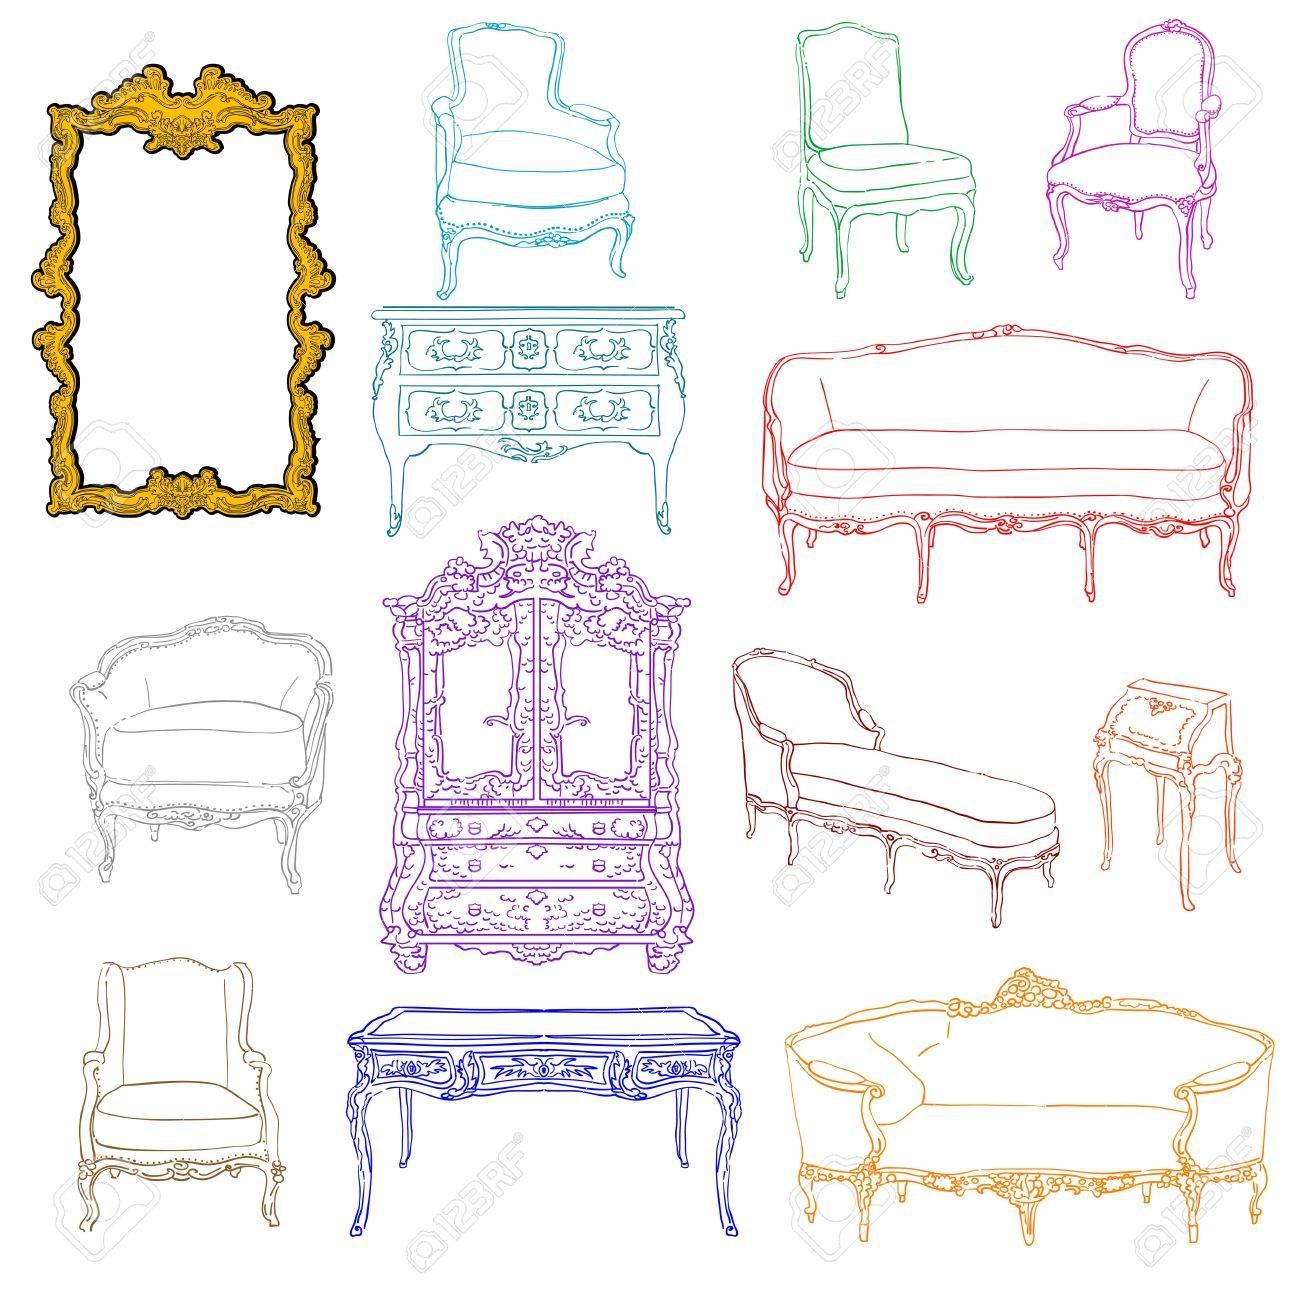 authentic rococo furniture colored doodles and mirror isolated on white Stock Vector - 11479139